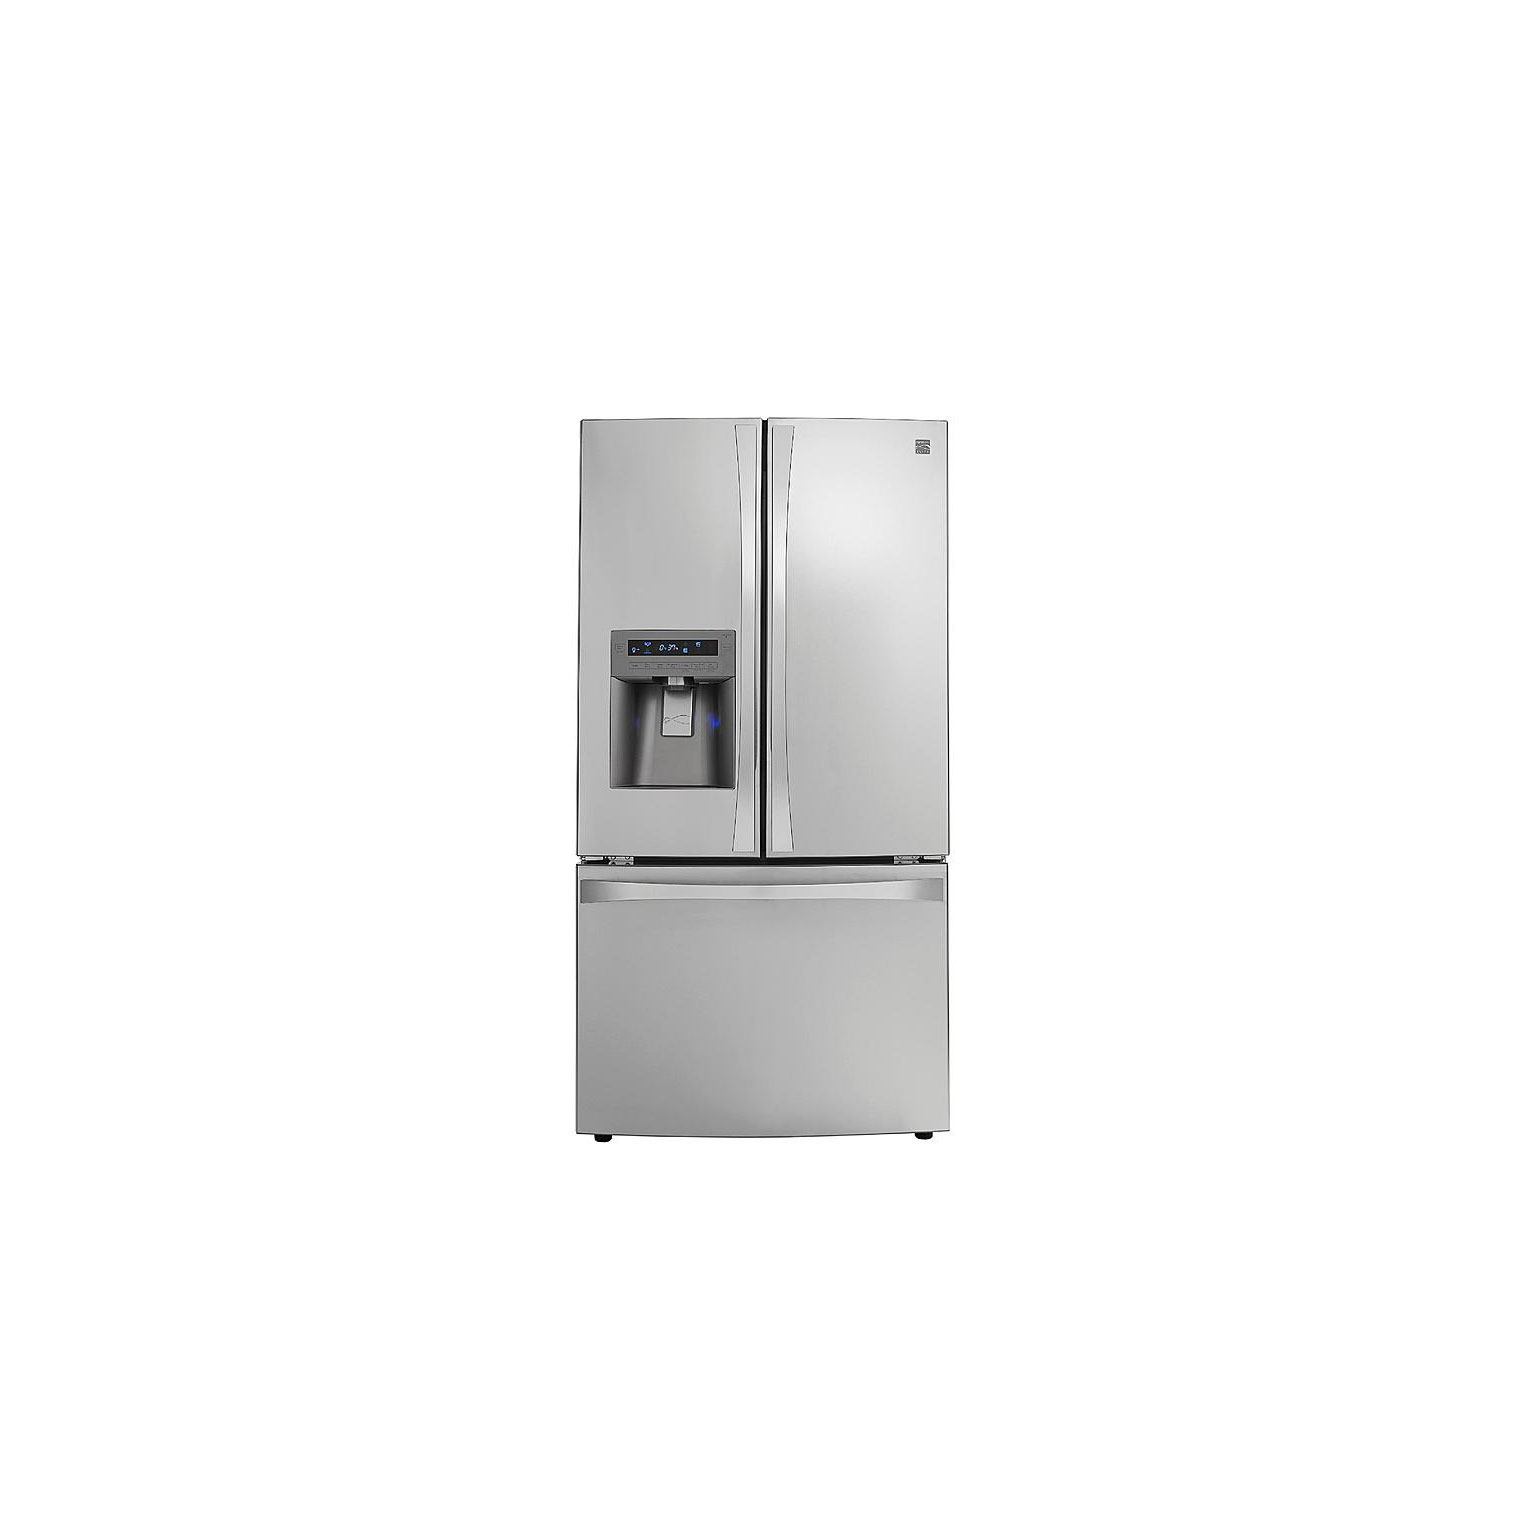 Whirlpool Gold French Door Refrigerator Reviews Part - 50: French Door Bottom-Freezer Refrigerator 04672093000 Review